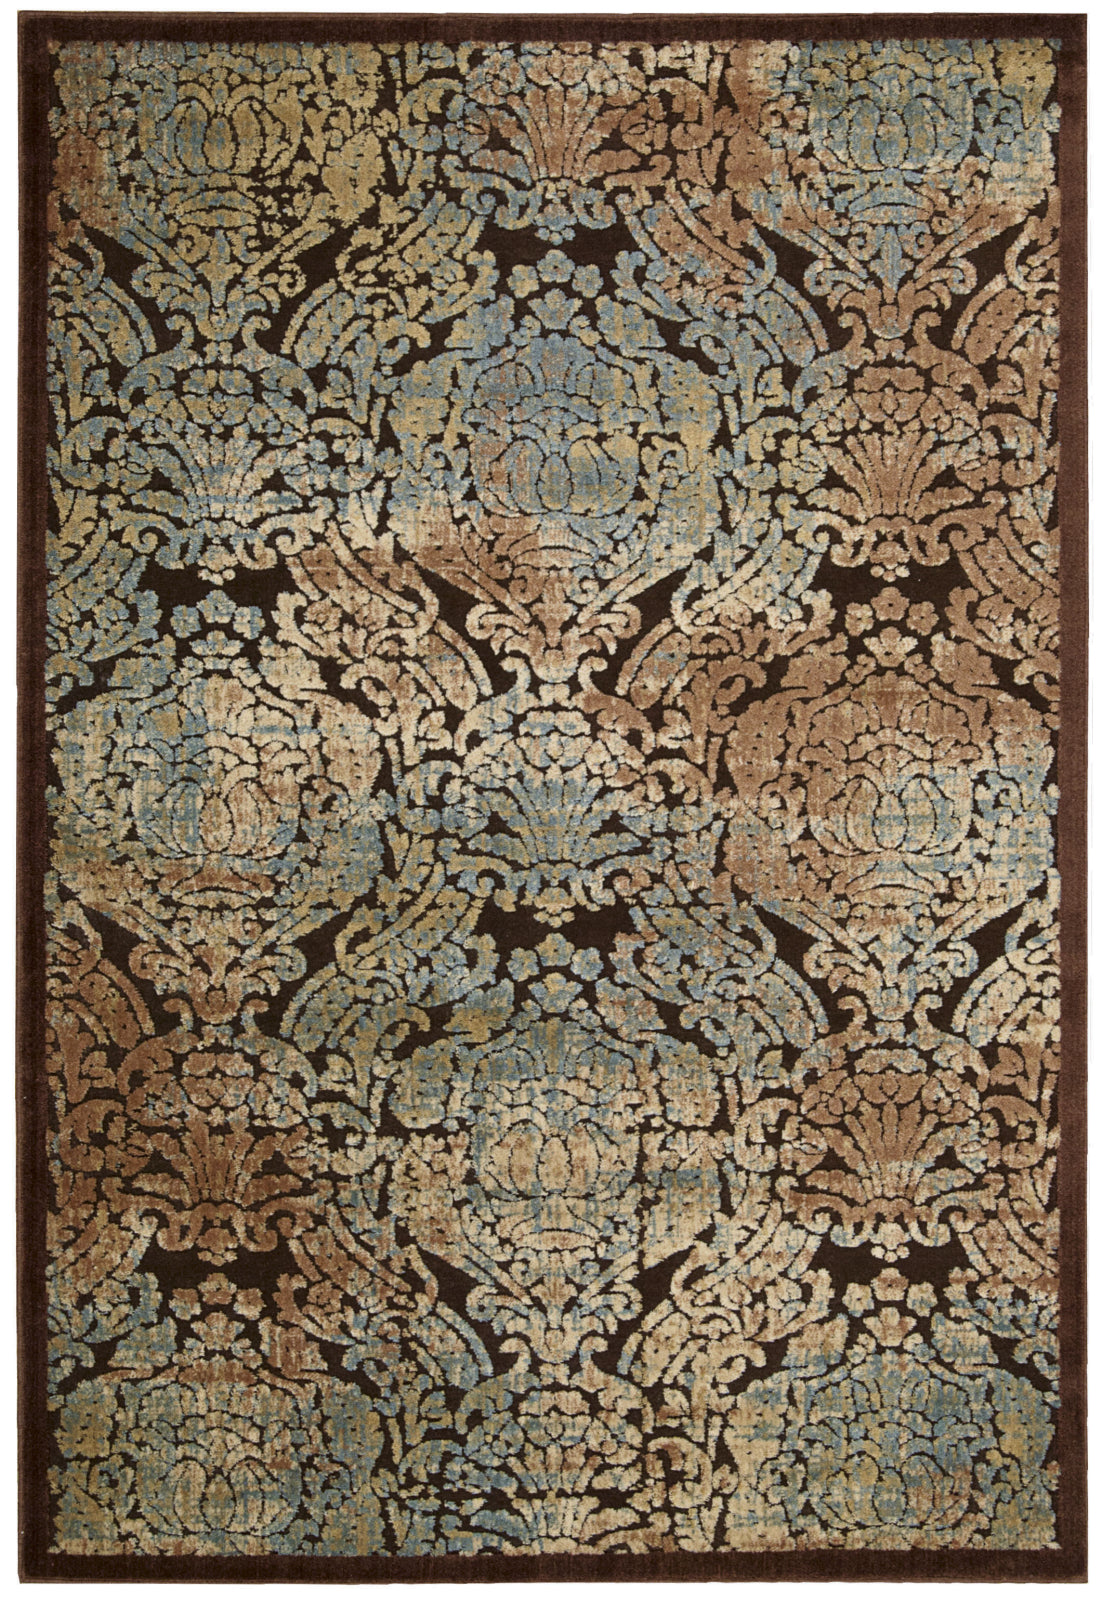 Nourison Graphic Illusions GIL09 Chocolate Area Rug main image